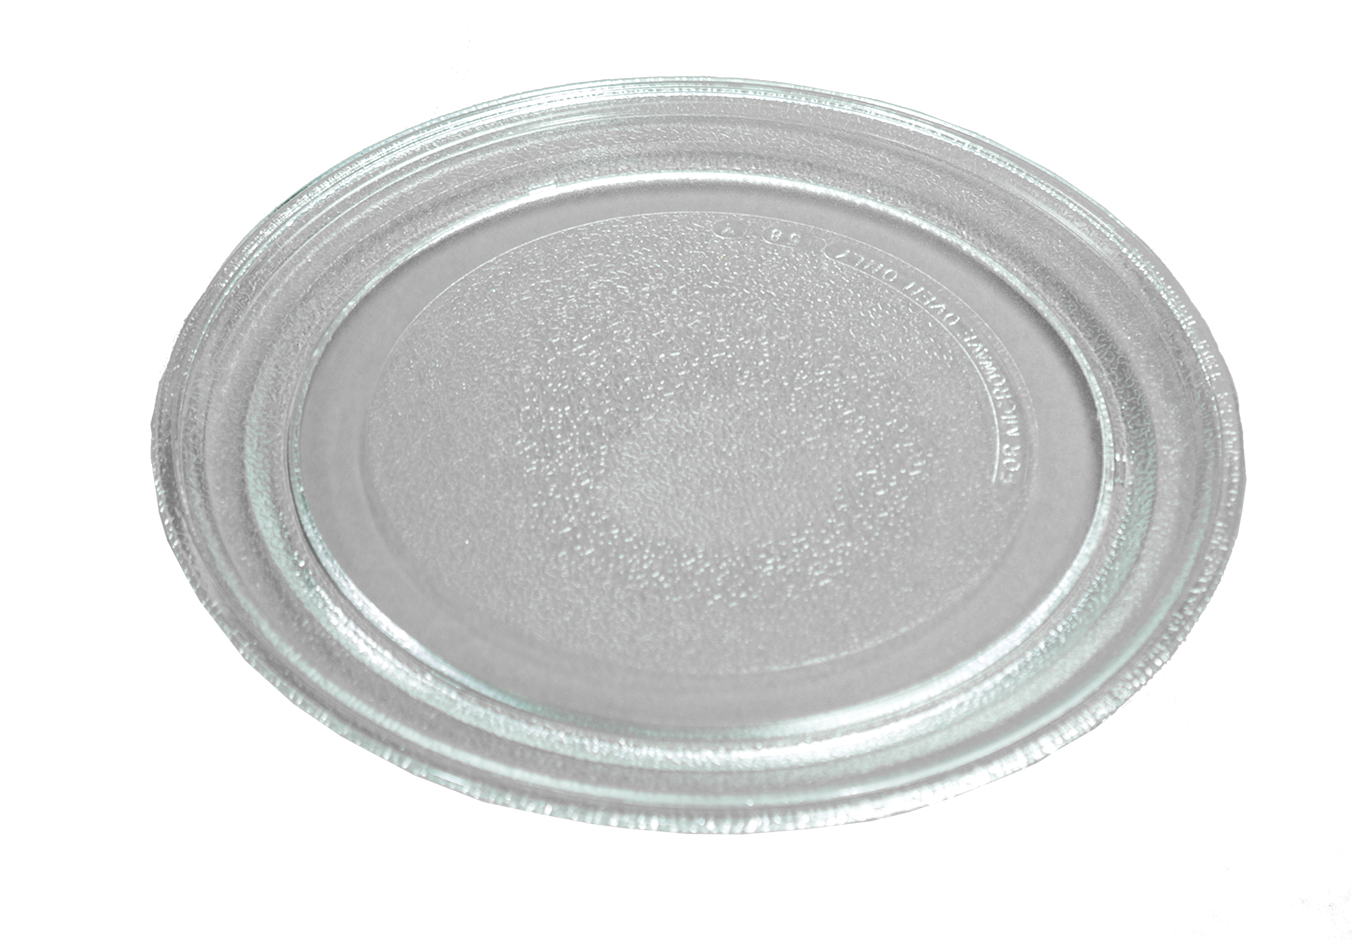 LG Microwave Glass Tray 3390W1A035A